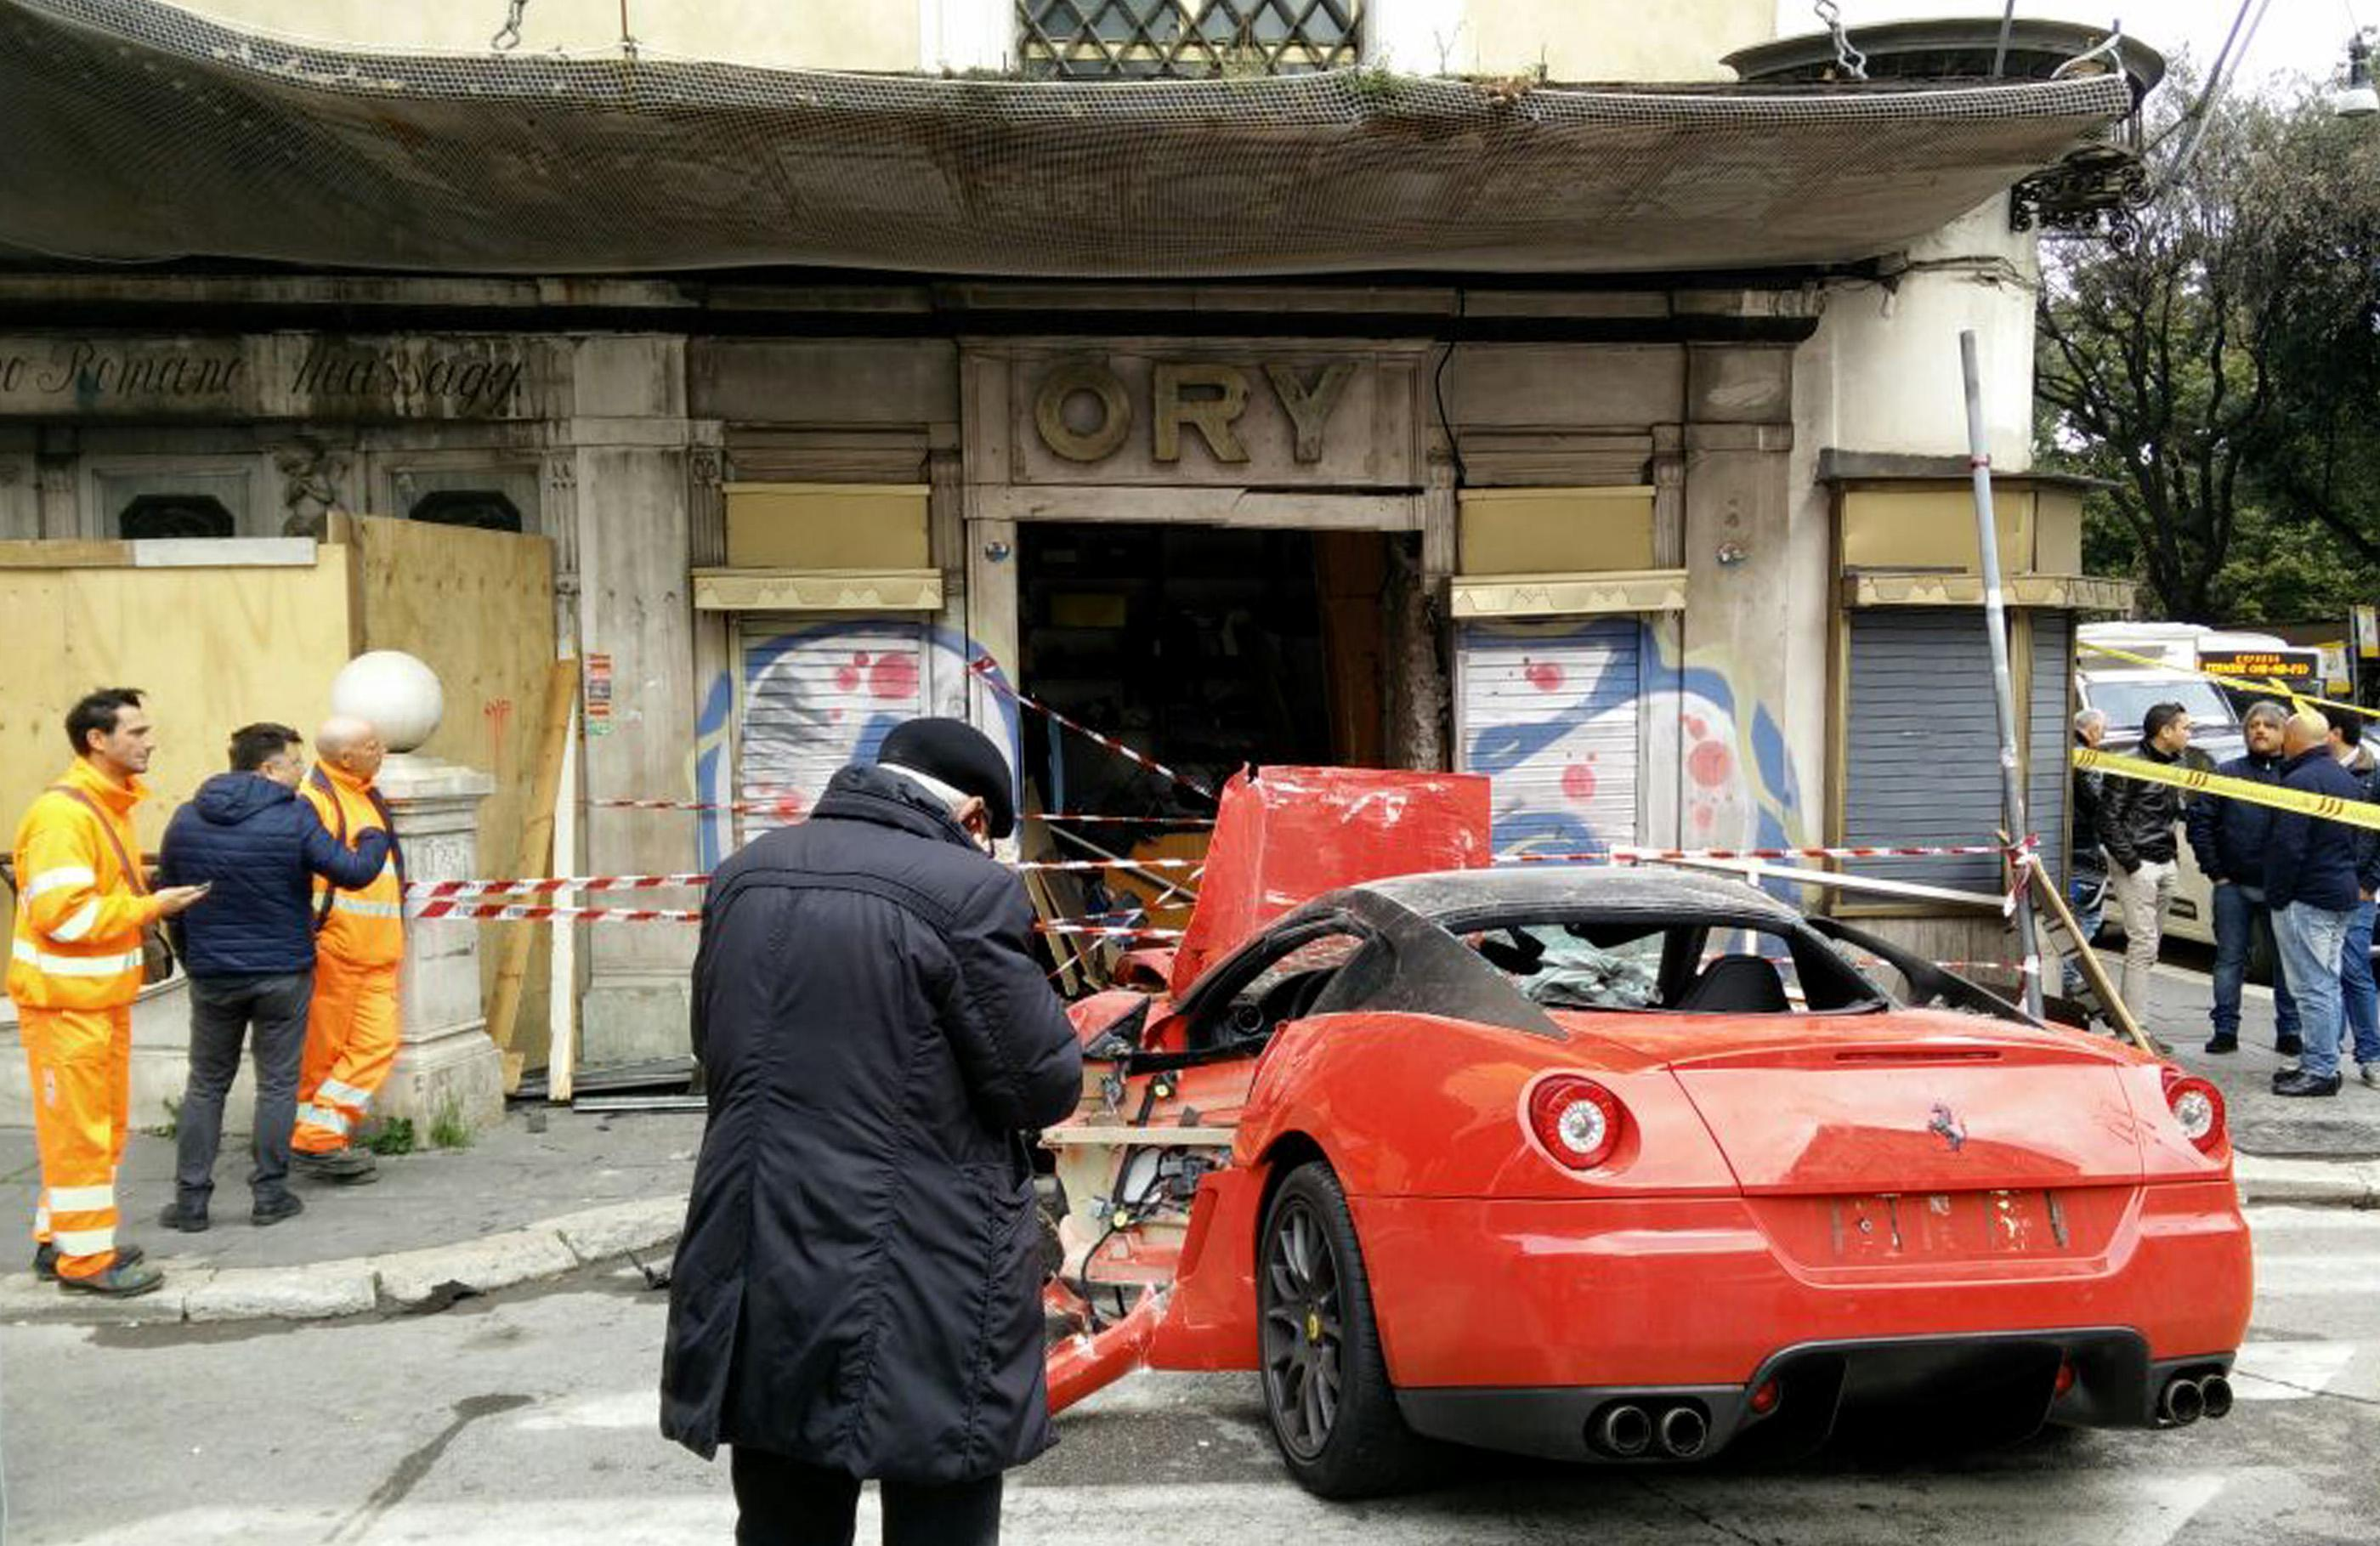 A photograph made available on 01 April 2015 showing the aftermath following a ferrari 599 GTO which crashed into a shop in Viminale's road in Rome, Italy 30 March 2015.